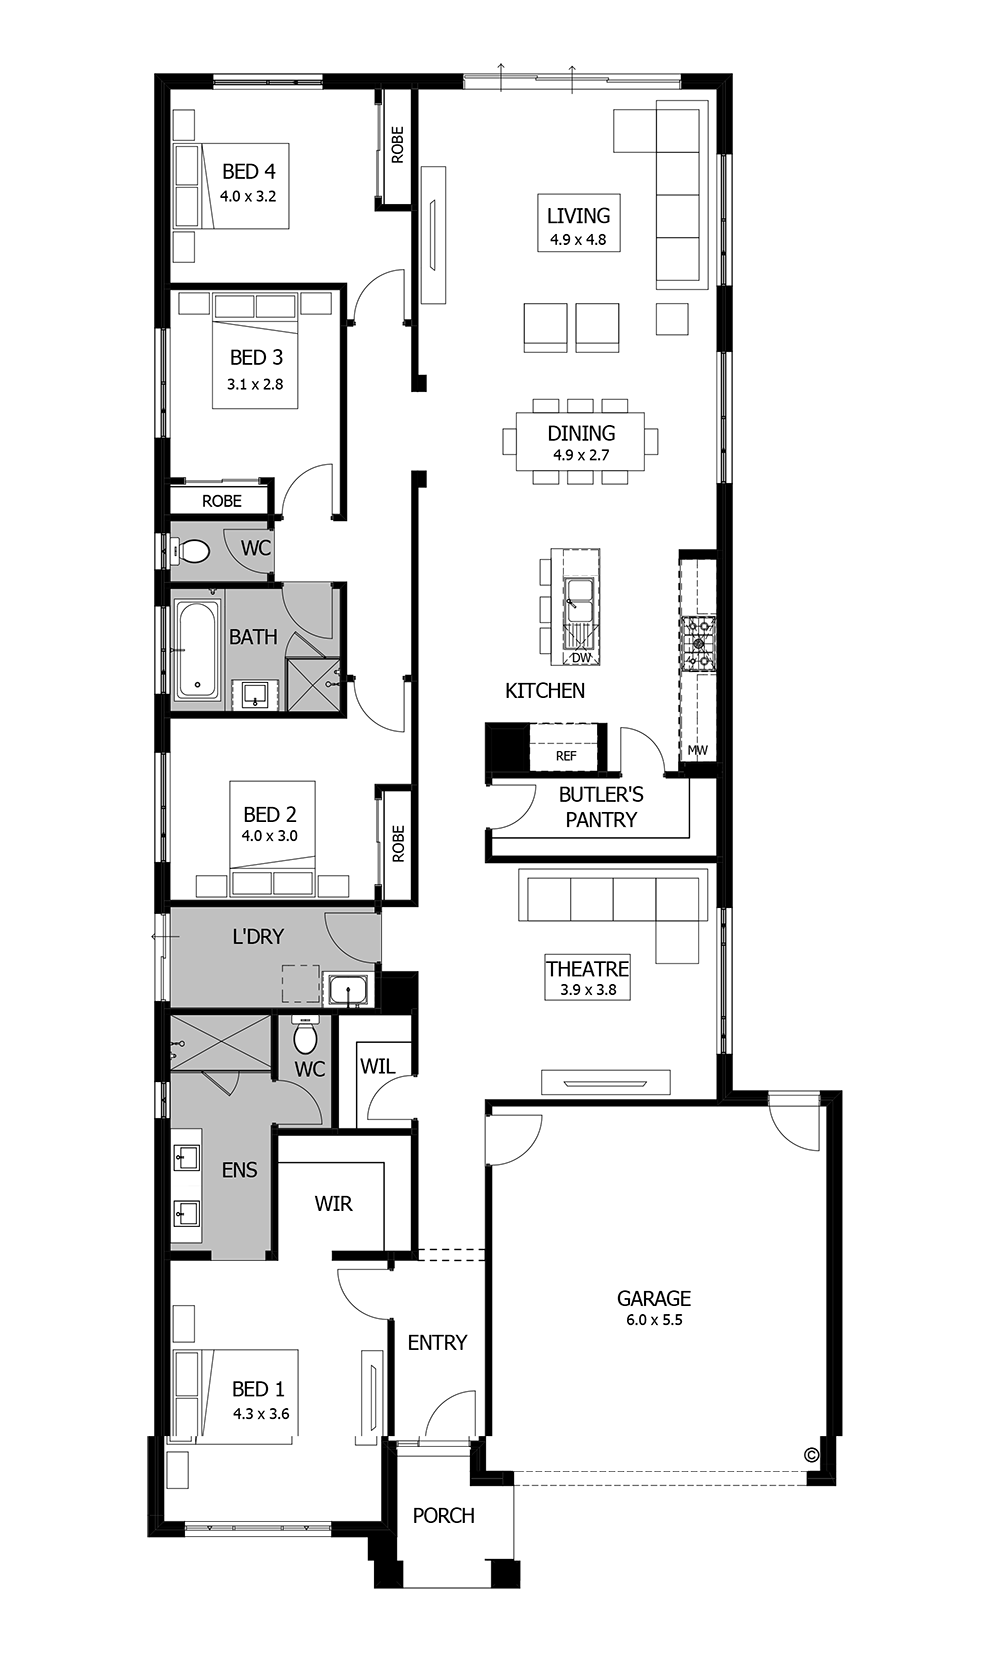 Boutique Homes - Chelsea 26 Floor Plan in 2019 | Boutique ... on adrian house plan, andover house plan, queens house plan, hudson house plan, mckinley house plan, milford house plan, plumstead house plan, giselle house plan, blackburn house plan, brownsville house plan, marlow house plan, the dakota house plan, norwood house plan, suffolk house plan, stonehurst house plan, bellamy house plan, gracie house plan, cordell house plan, cassidy house plan, gene simmons house plan,